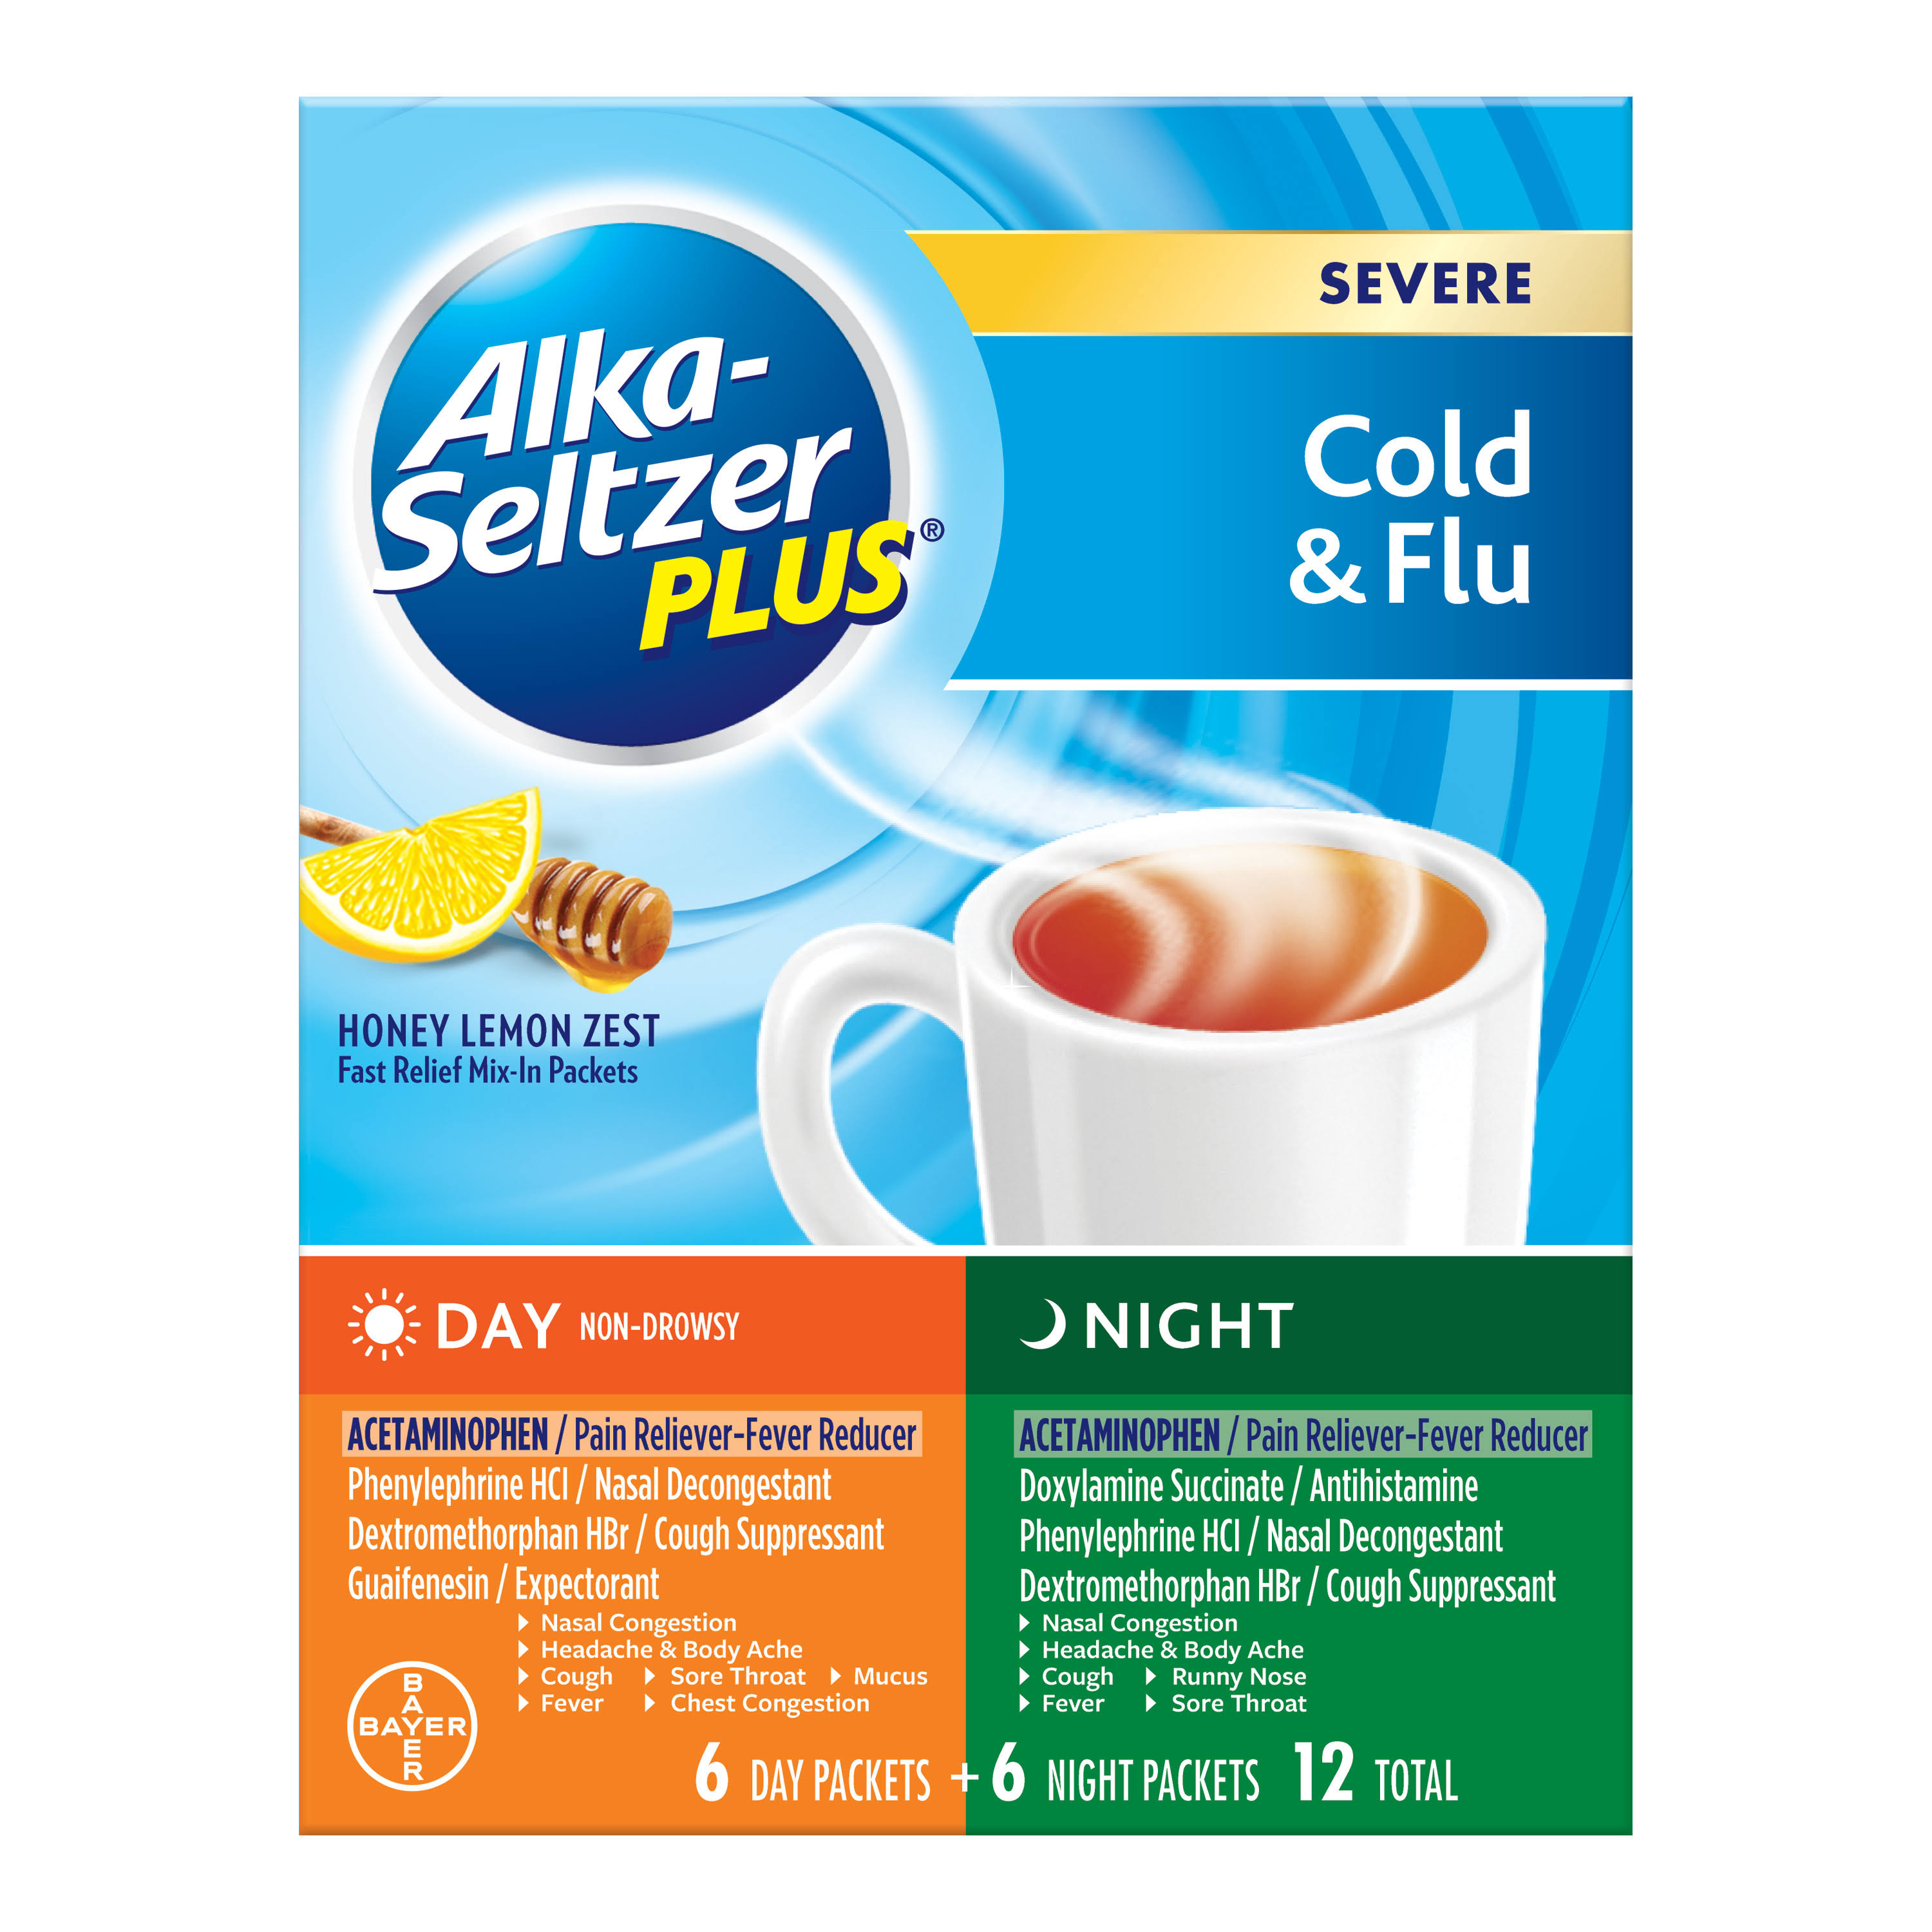 Alka Seltzer Plus Severe Cold and Flu Day Night Powder - 12ct